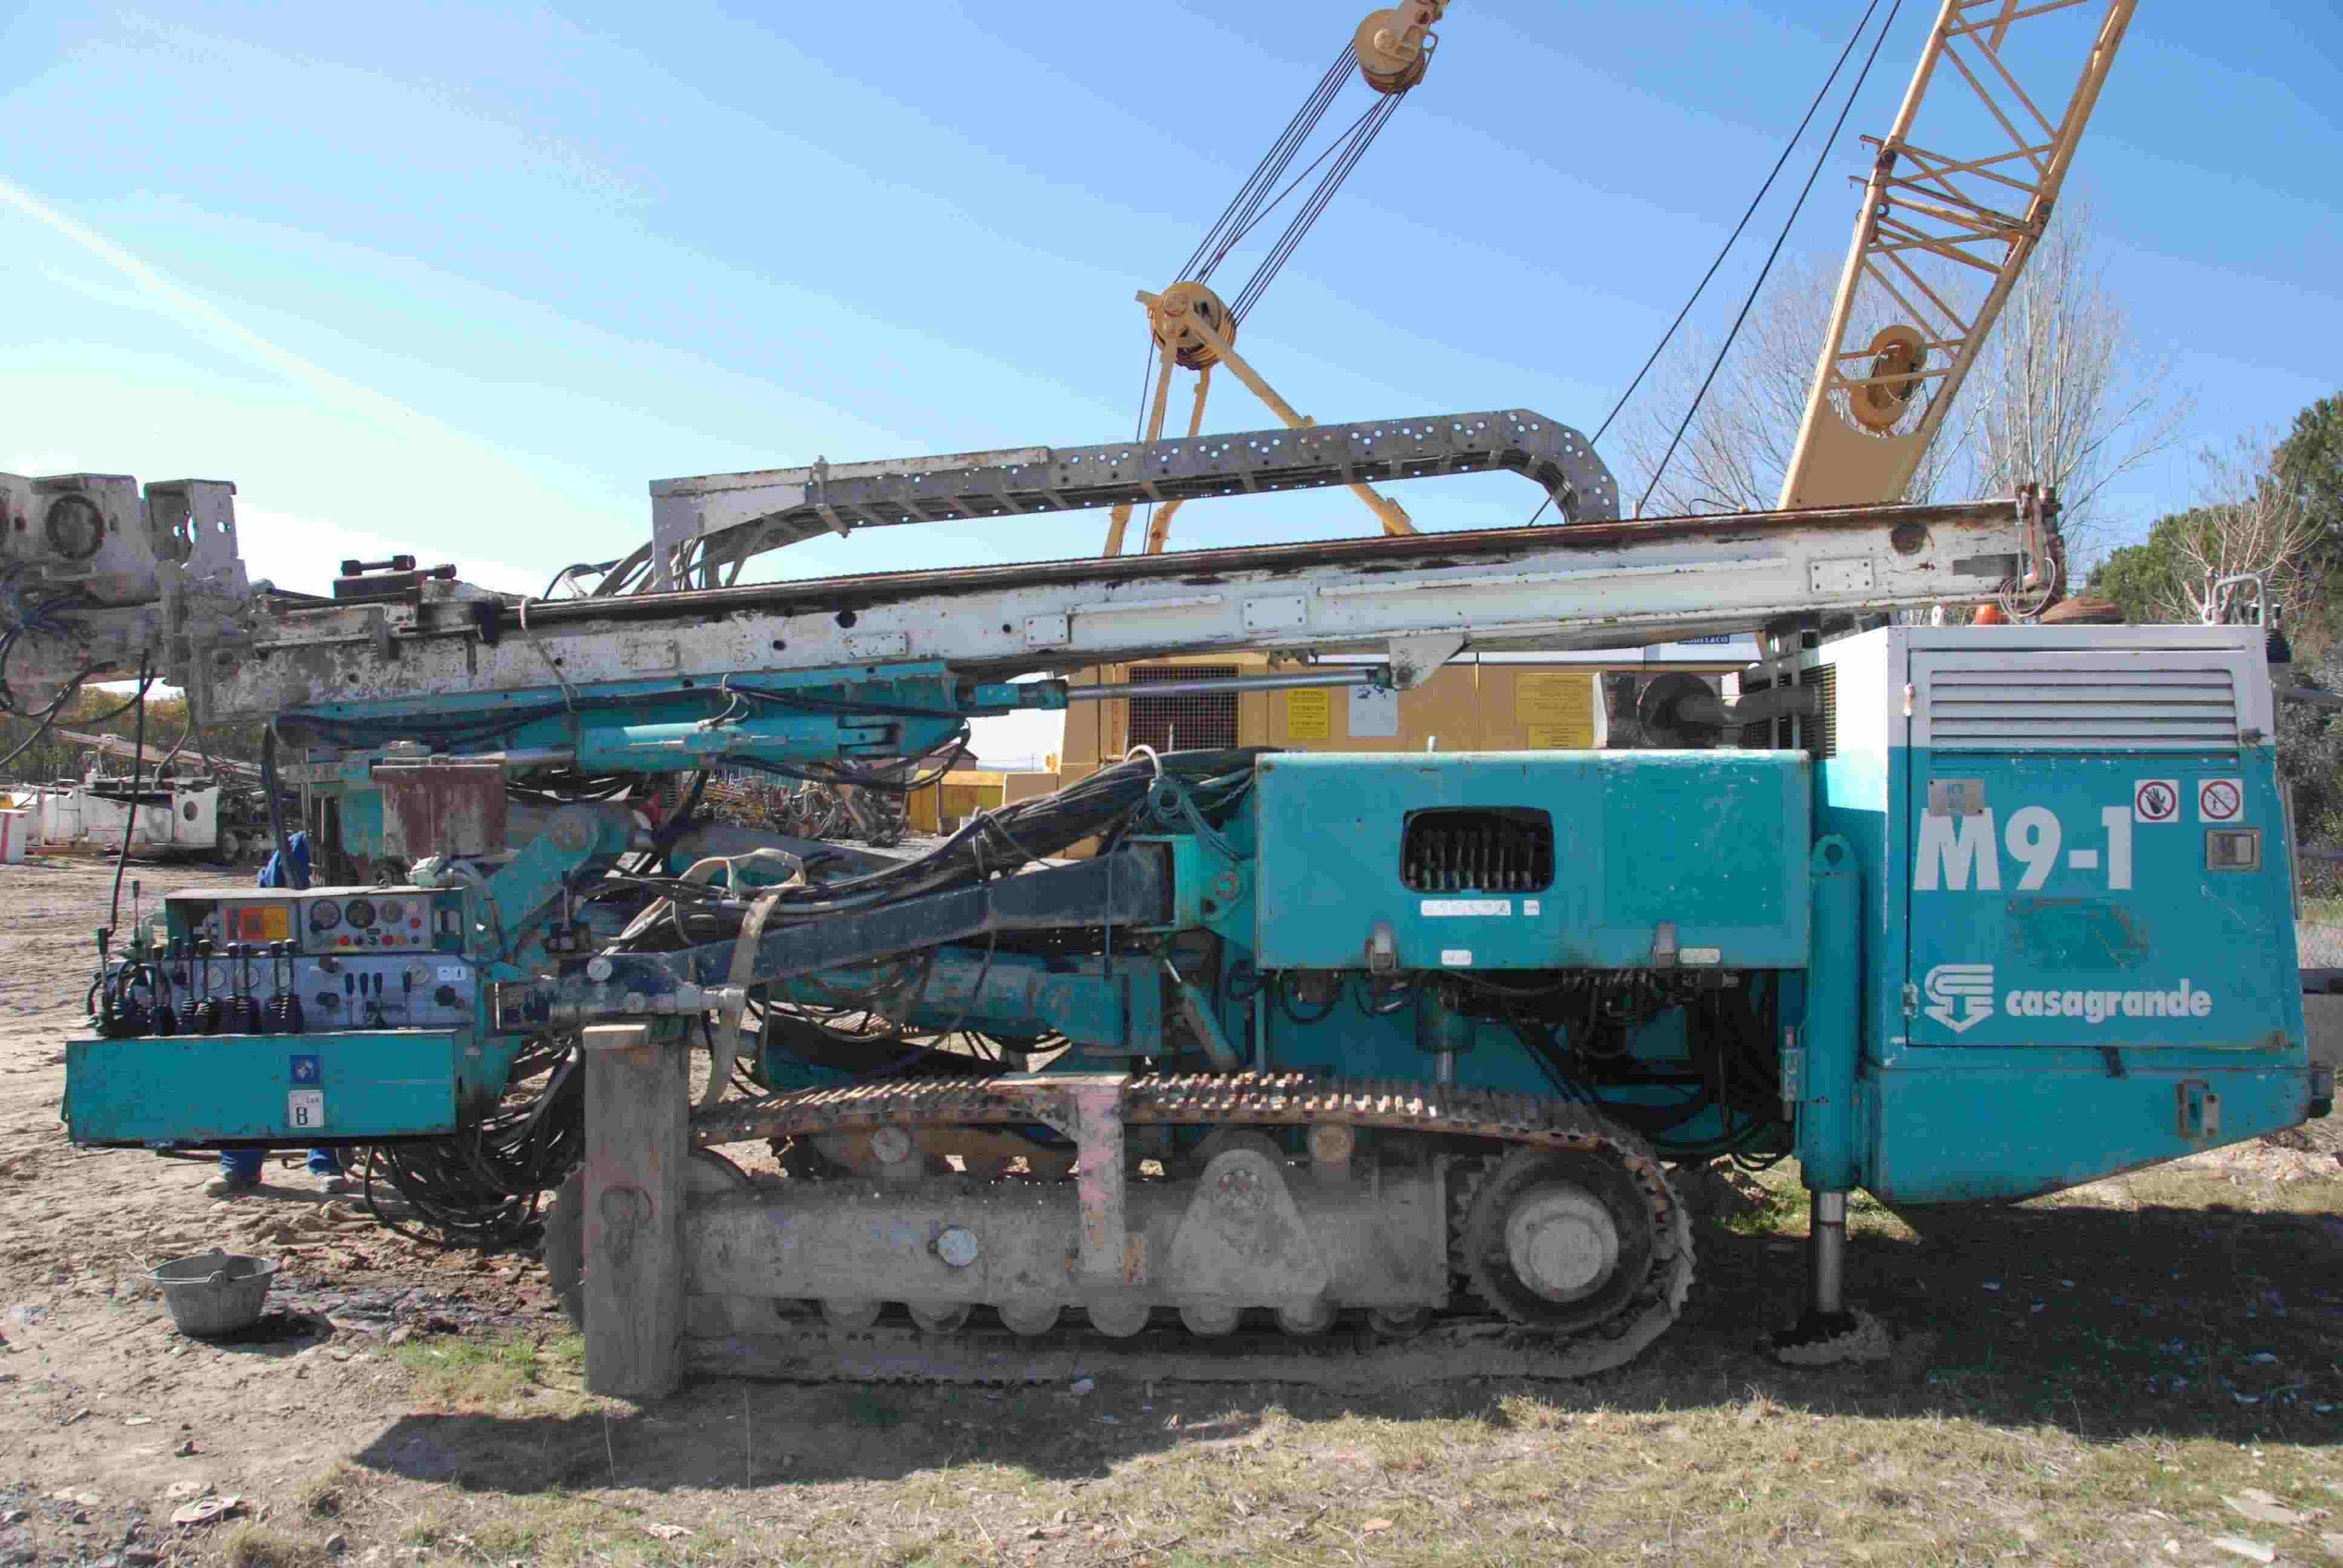 Used CASAGRANDE M9-1 (2001) for rent and sale